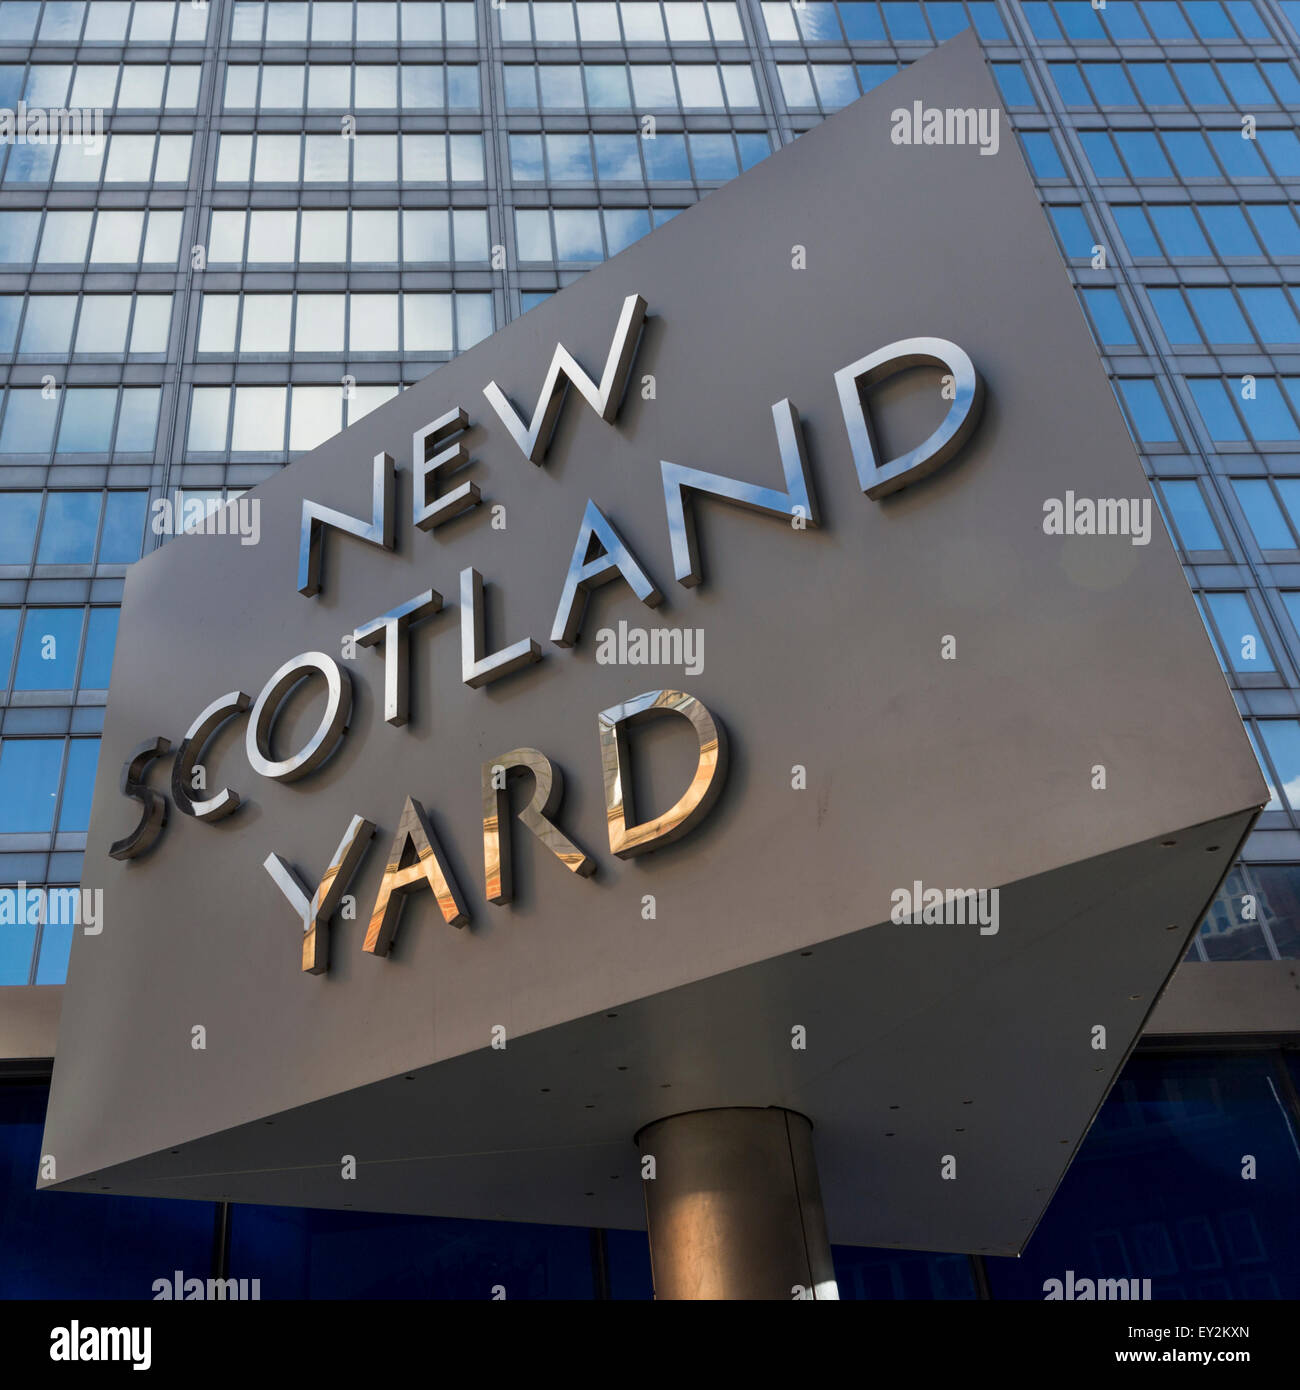 Rotating New Scotland Yard sign in front of police headquarters, London, UK, England - Stock Image